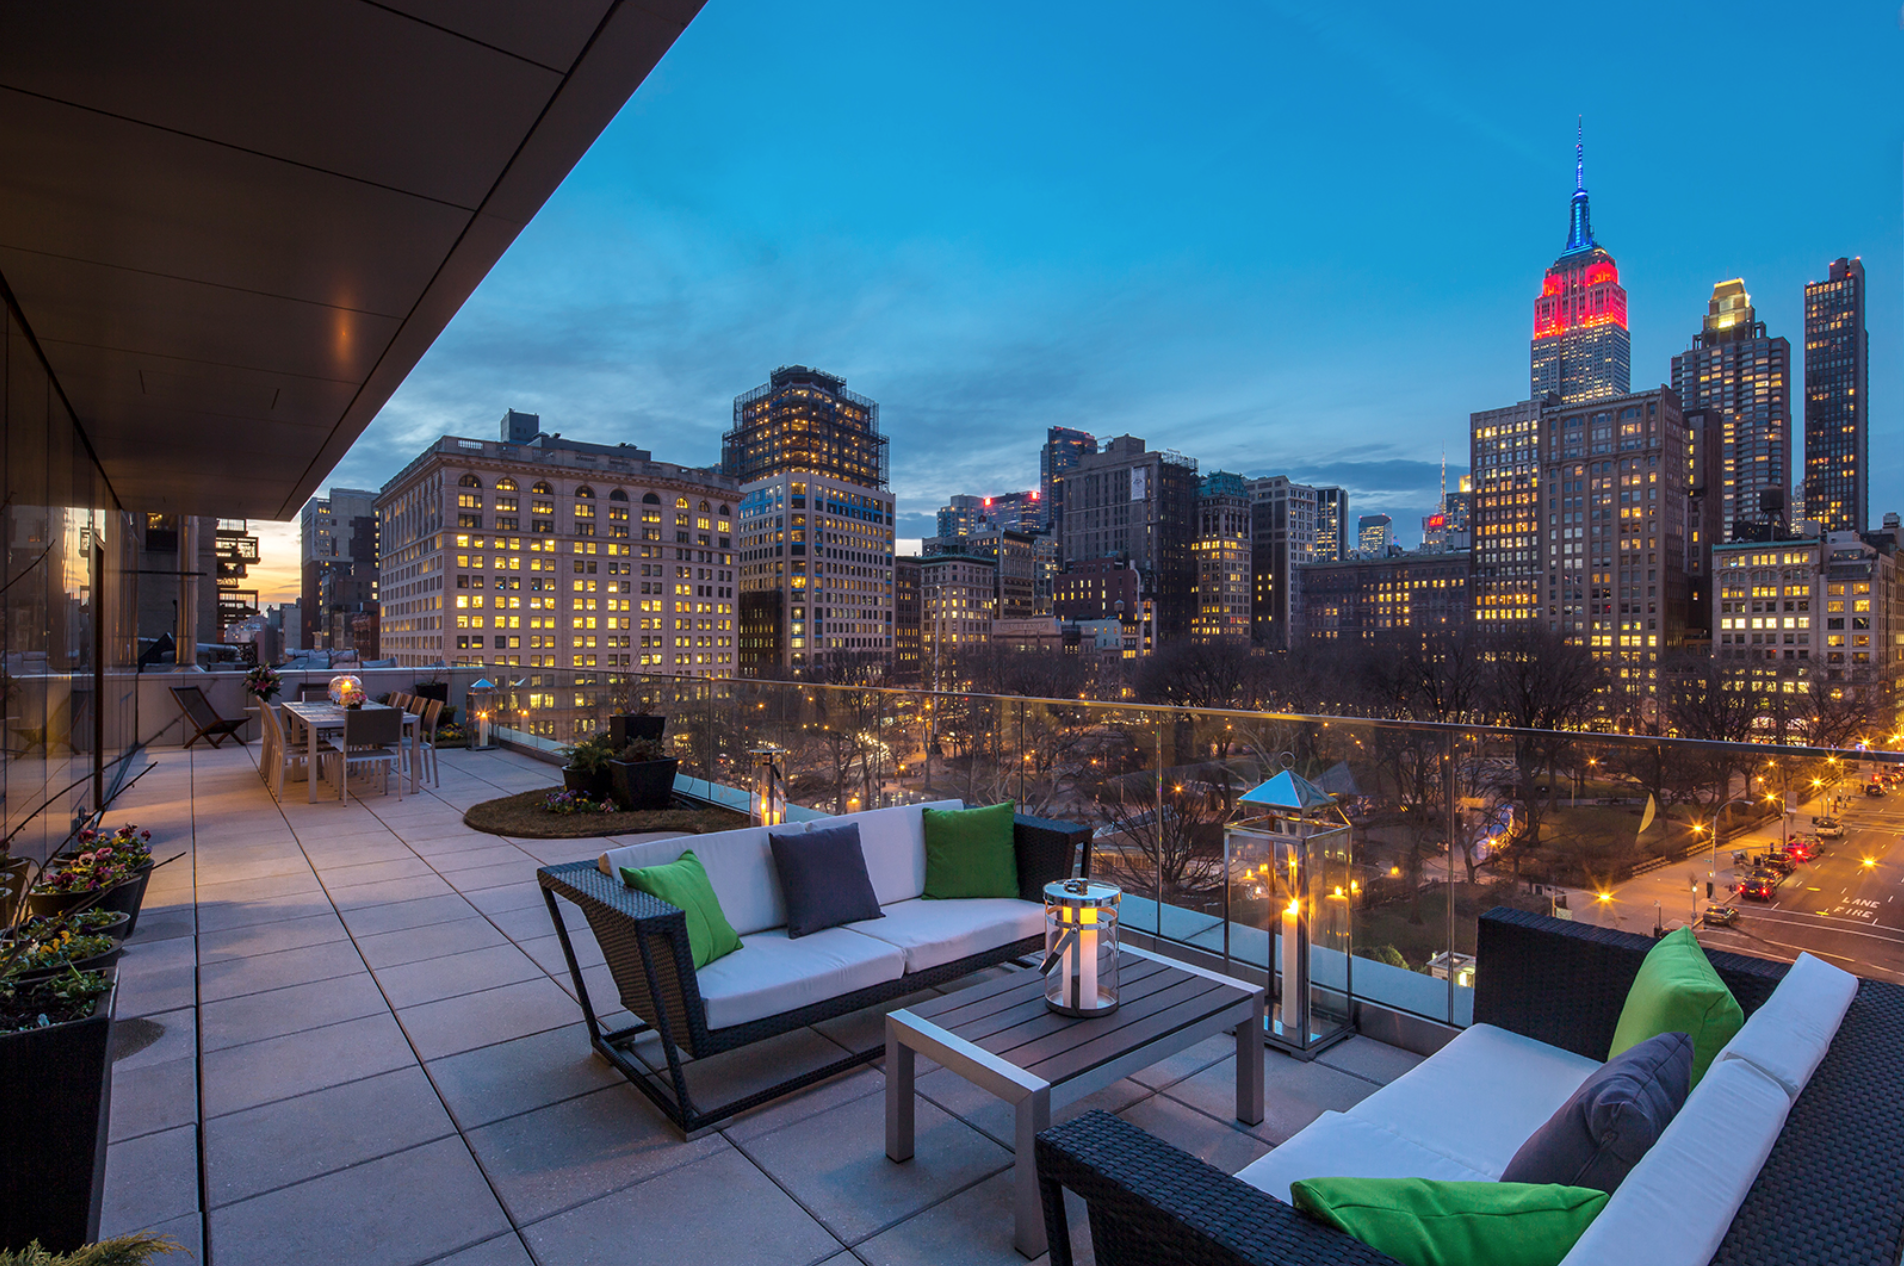 Featured Listing: Take A Look At This One Madison Pad With A Private Garden And Views of Madison Square Park